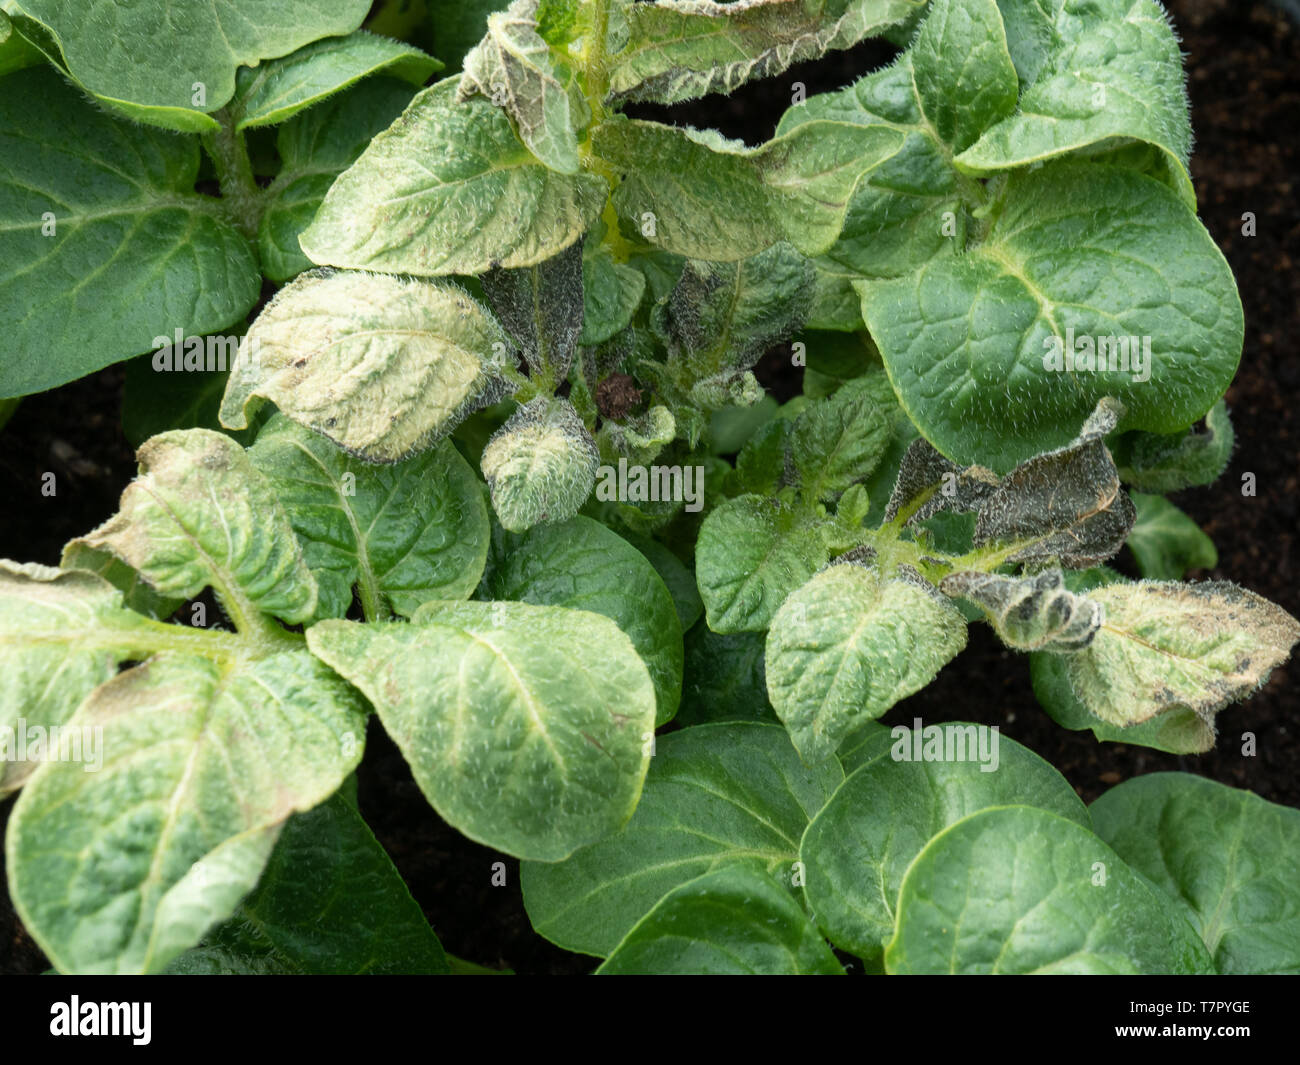 Close up of potato leaves showing damage caused by frost - Stock Image